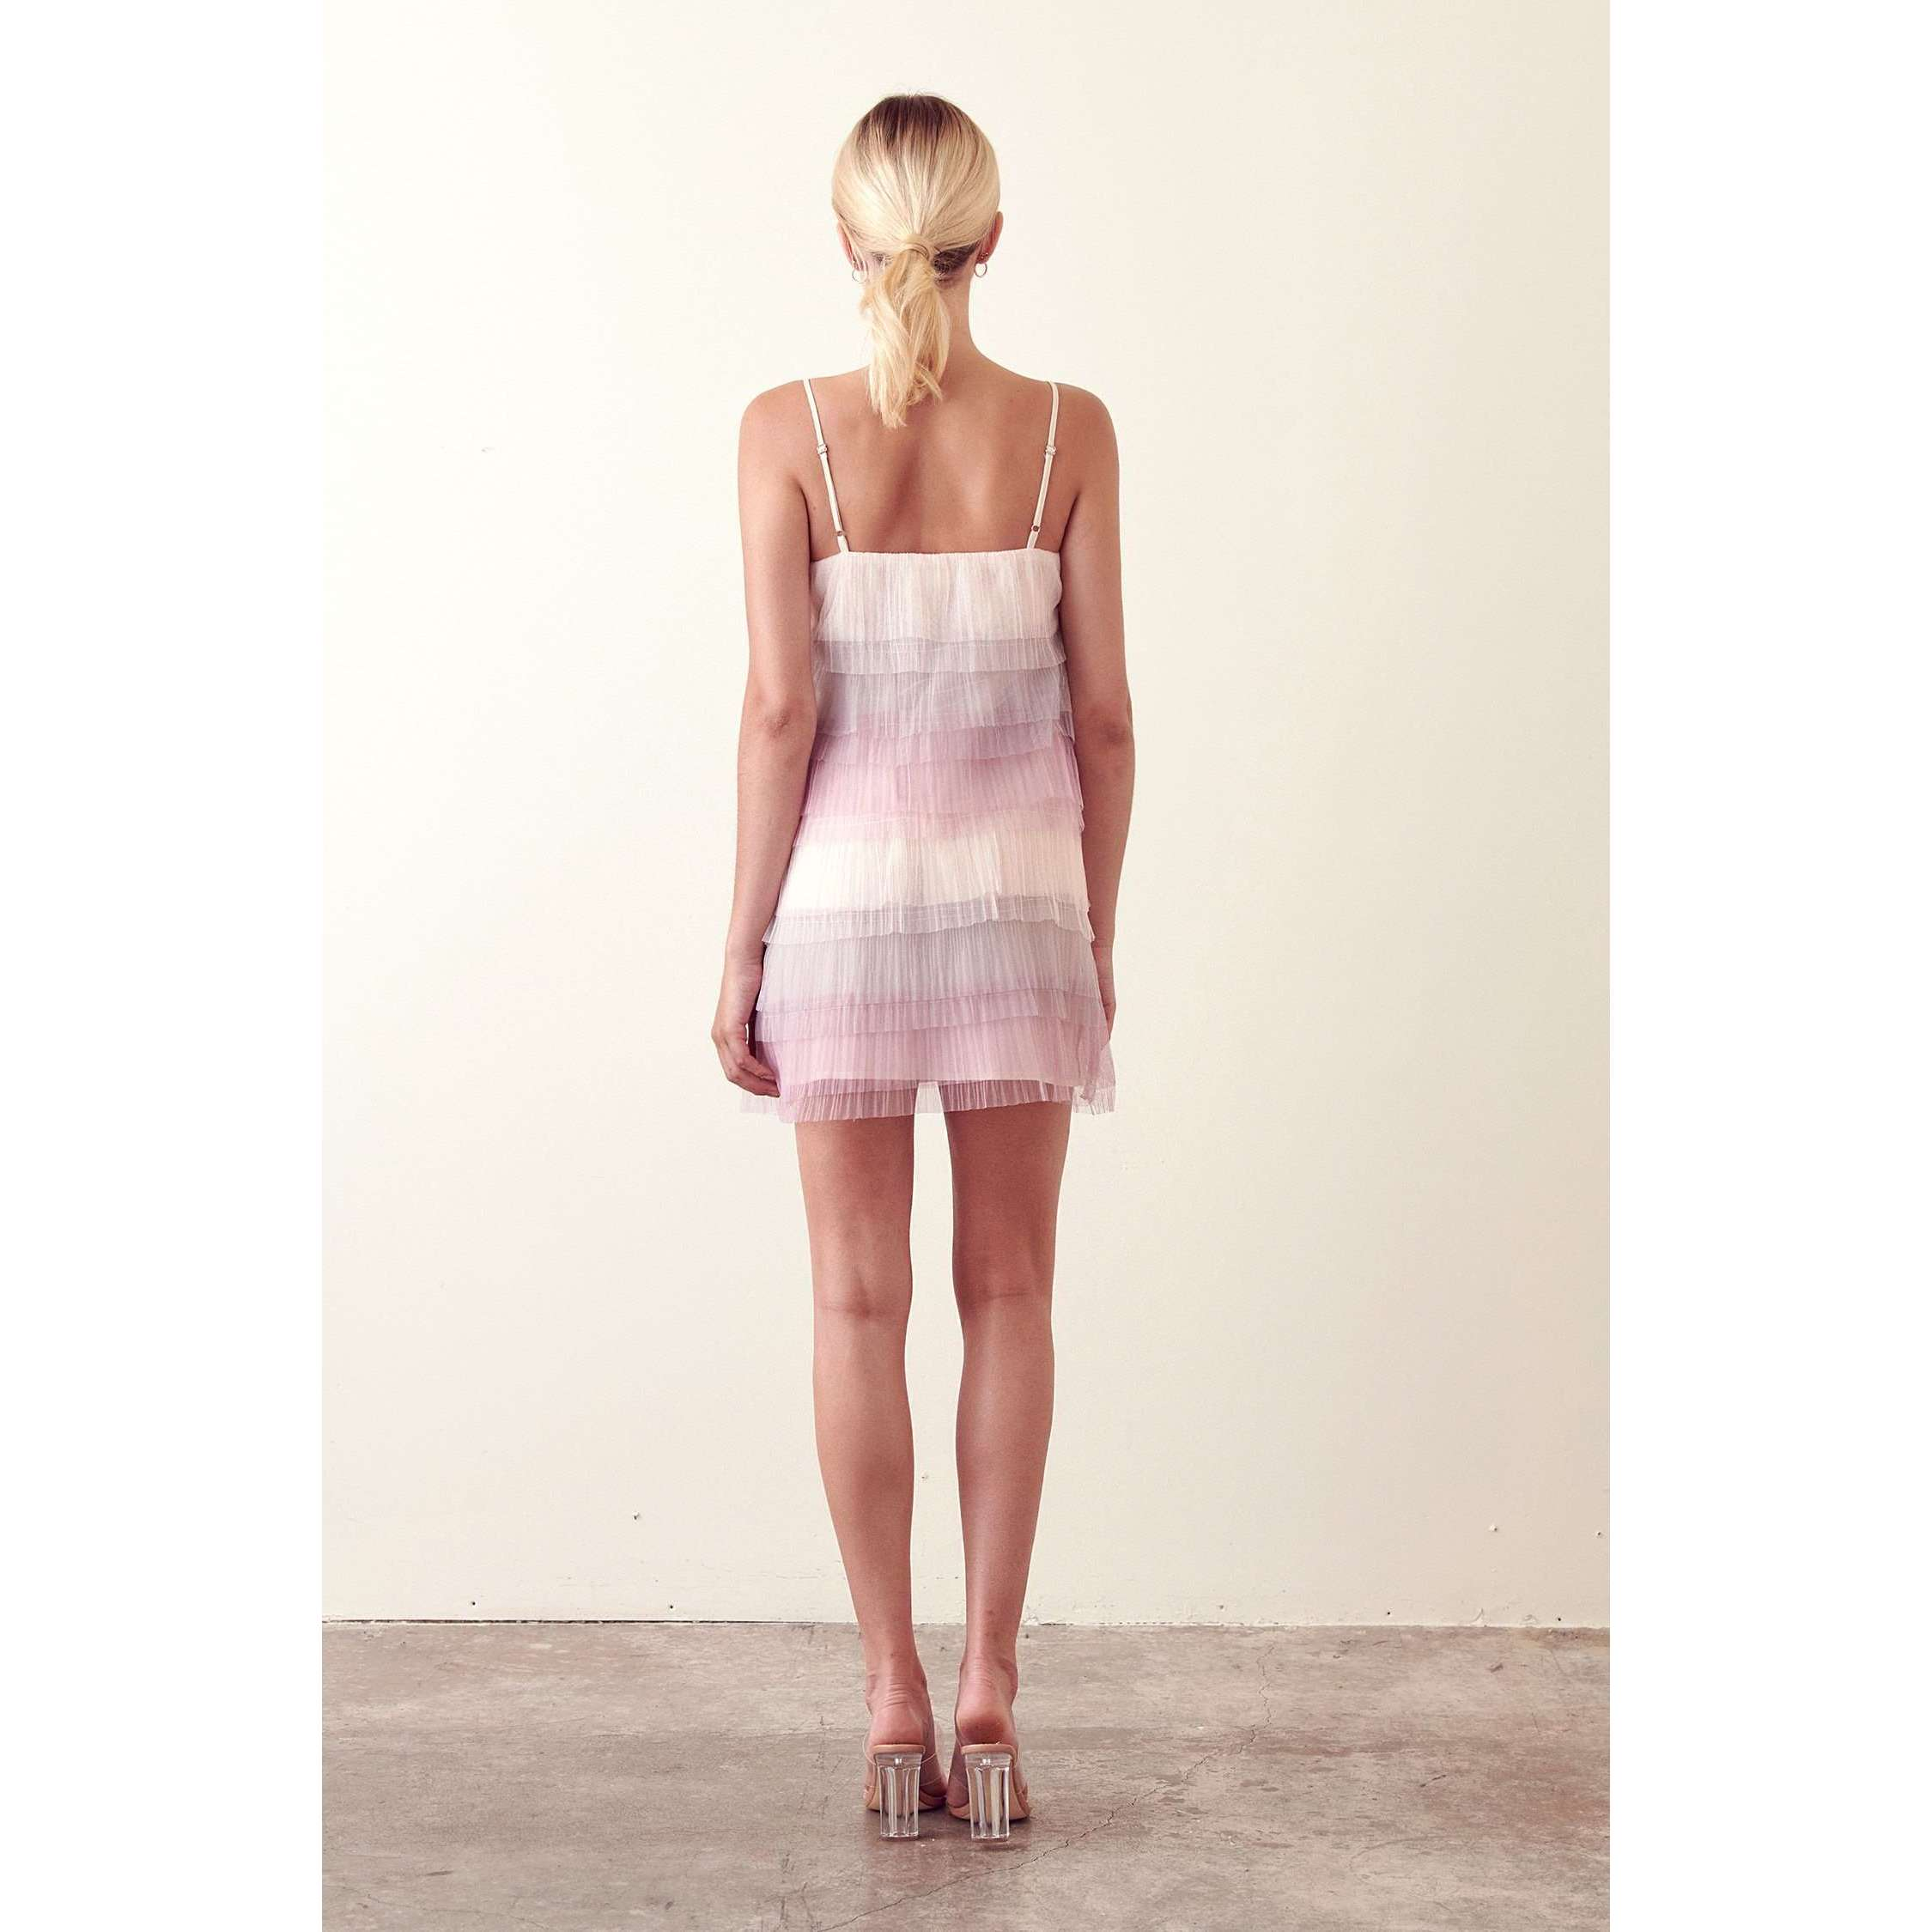 8.28 Boutique:Storia,Storia Taylor Swift Dress,Dress